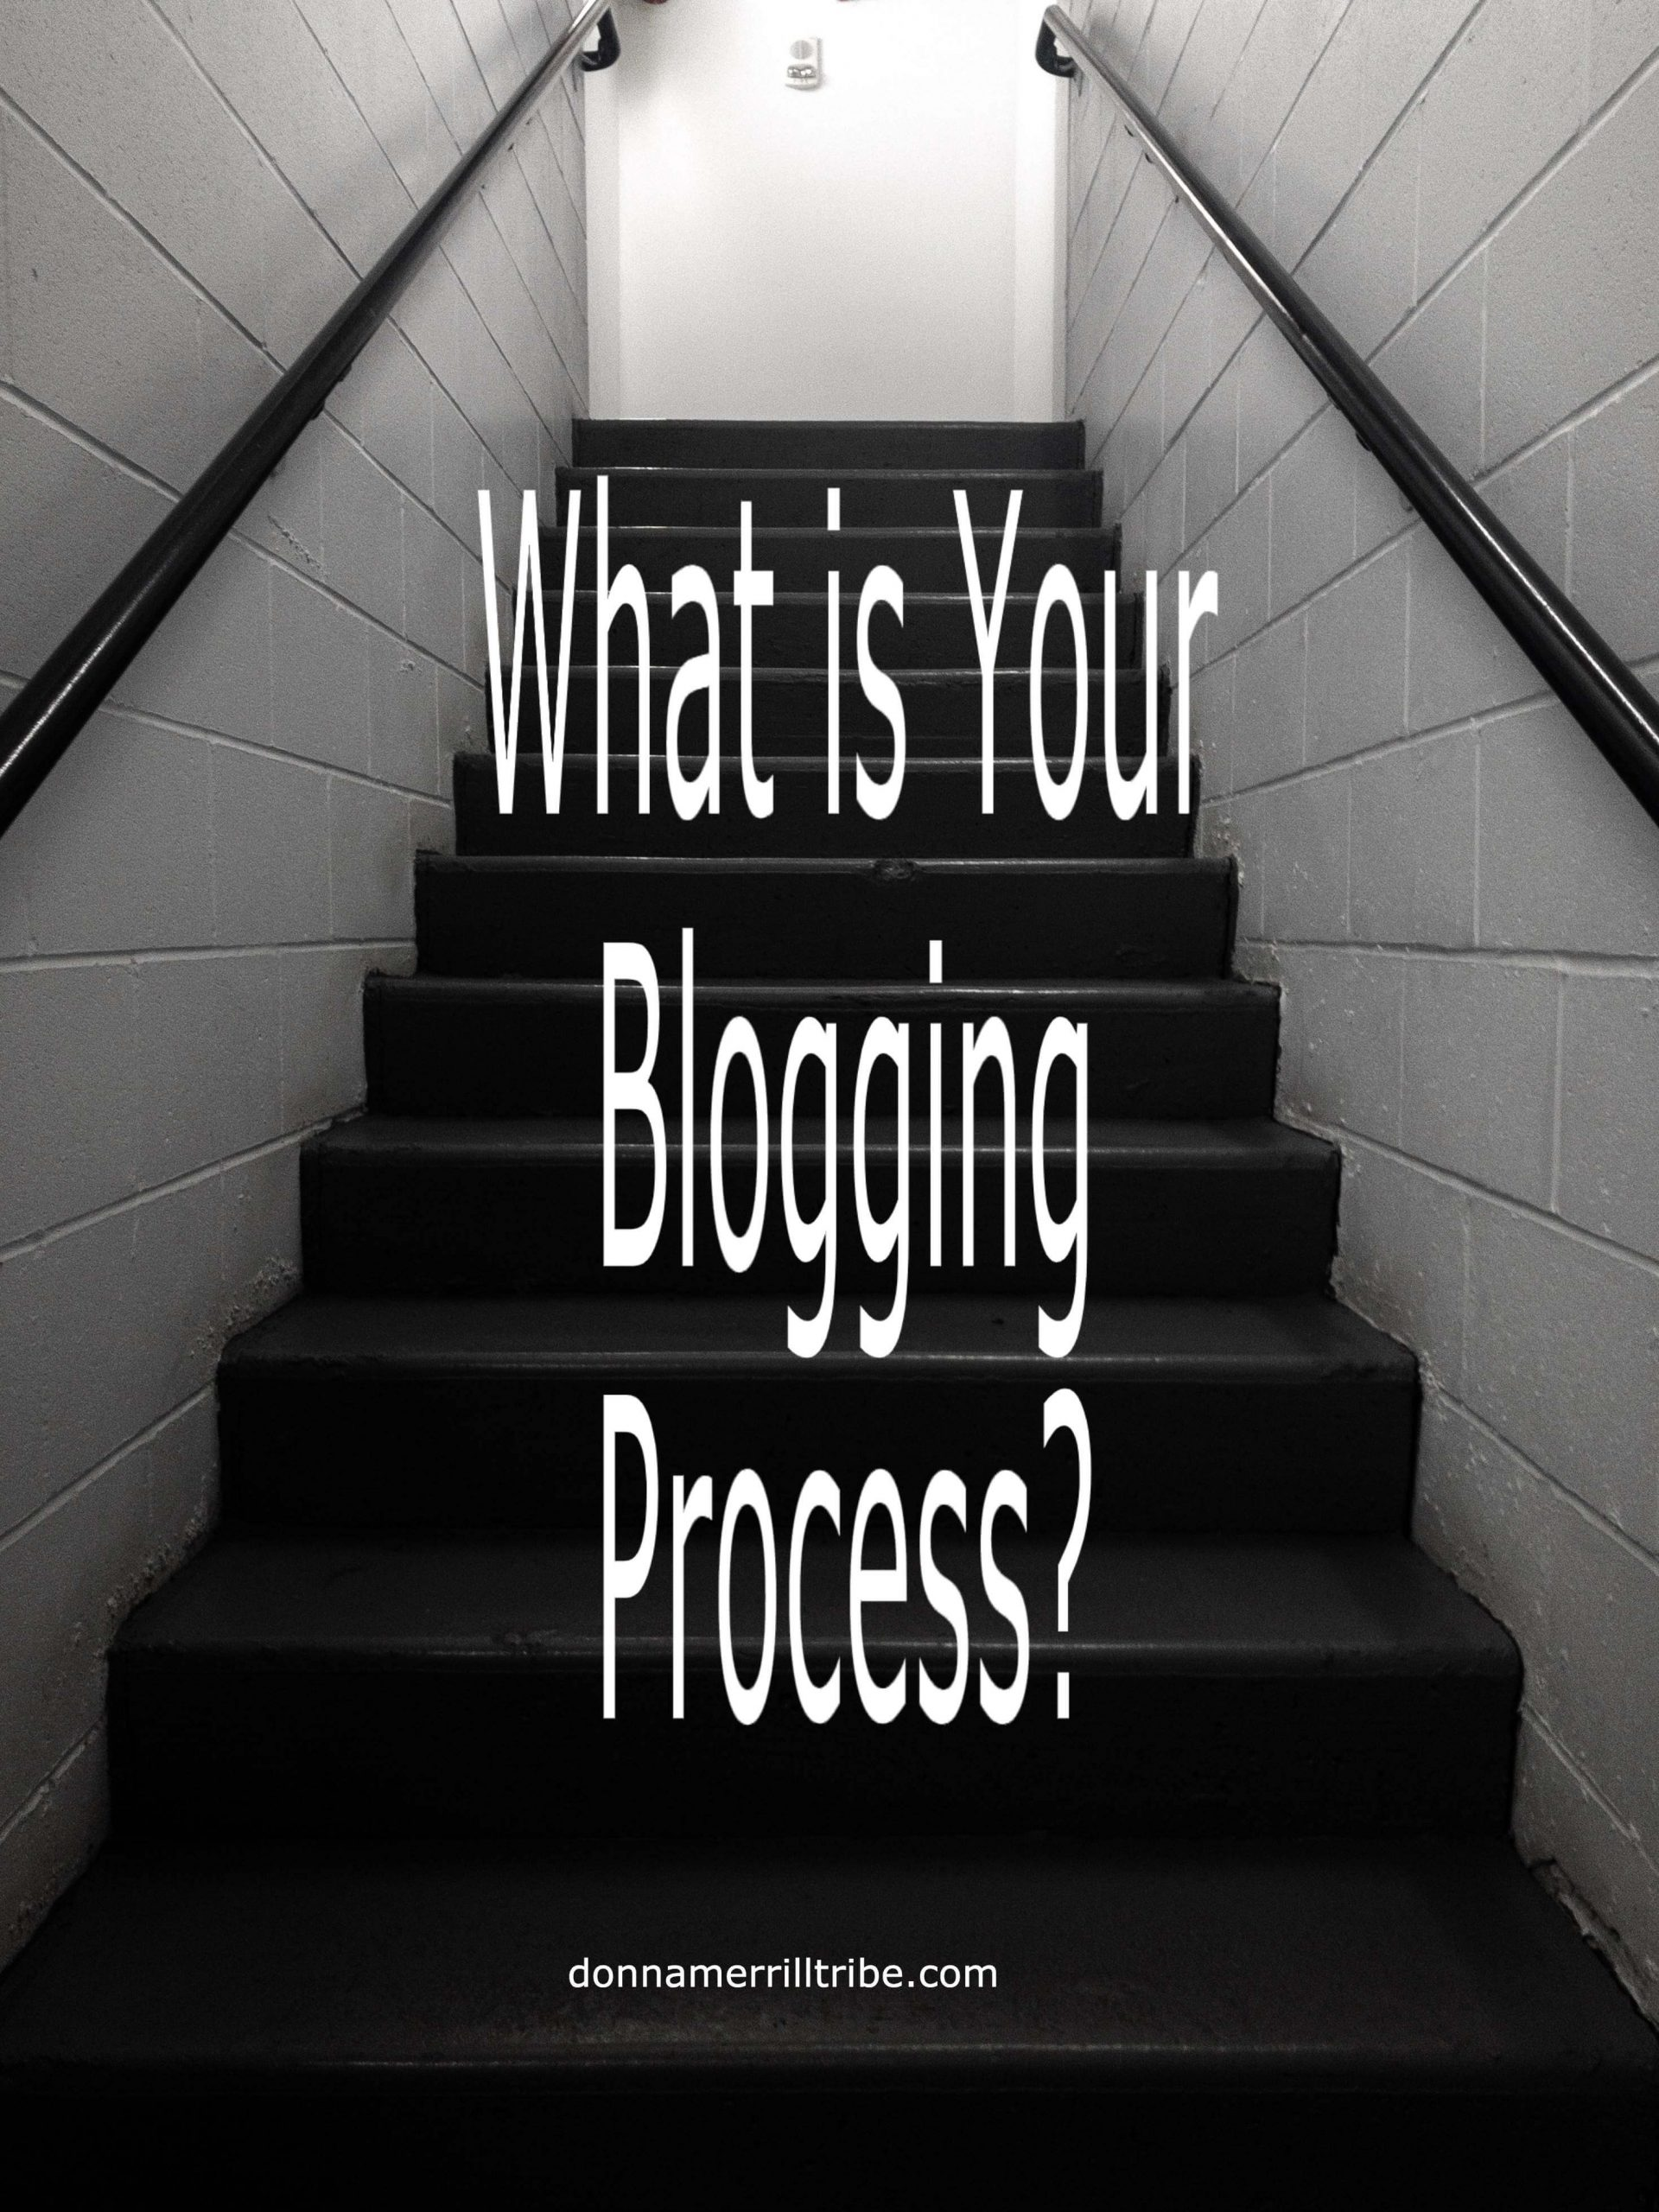 What is your Blogging Process